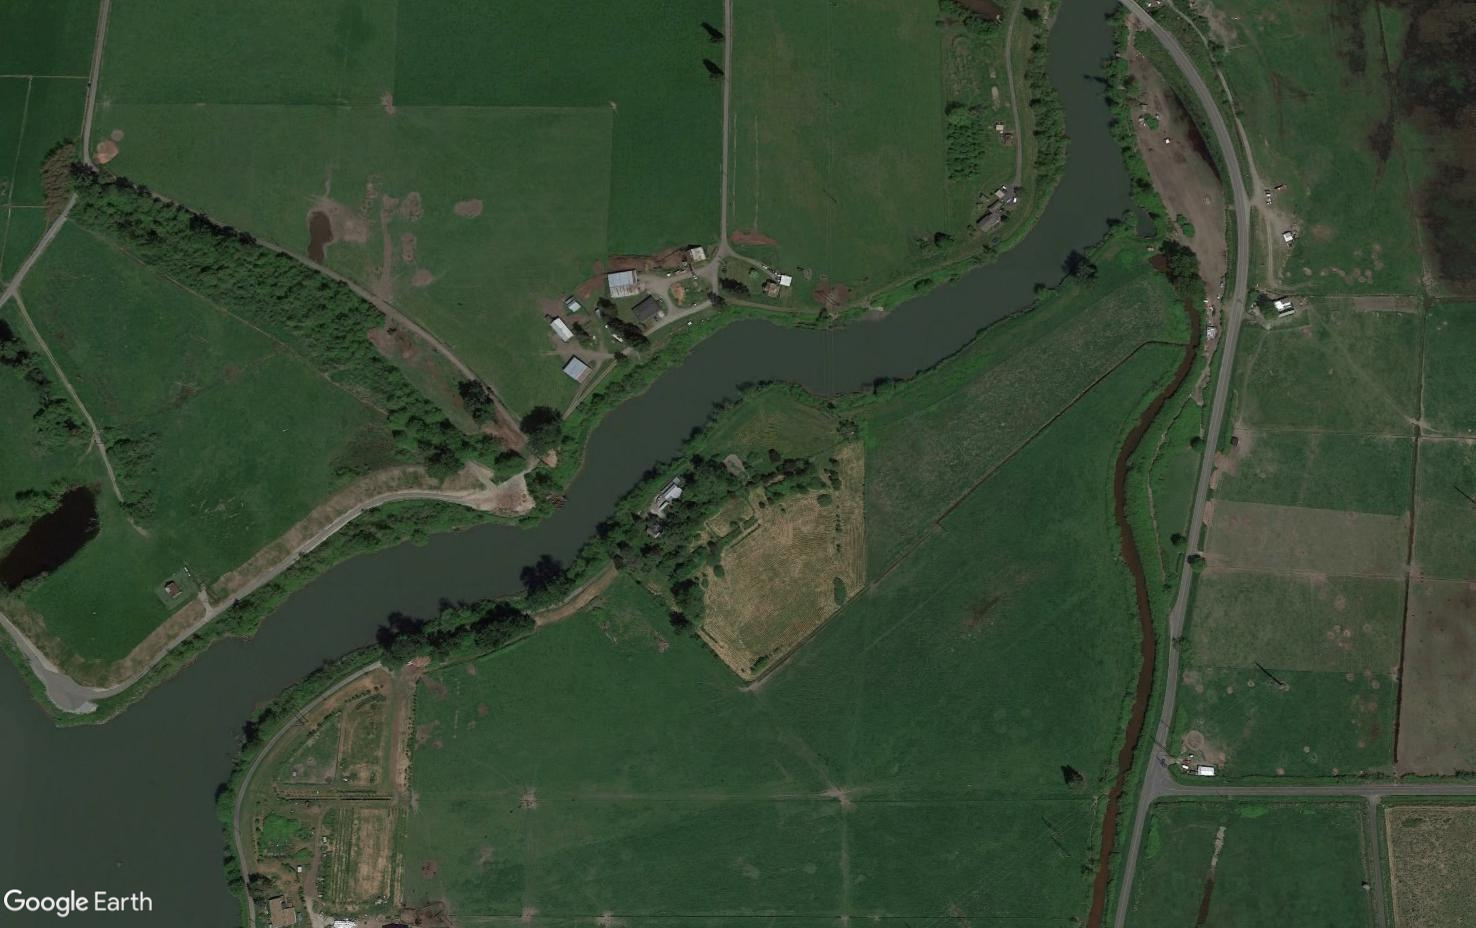 Aerial view of farm area along a river. My property has a growing green buffer around it.